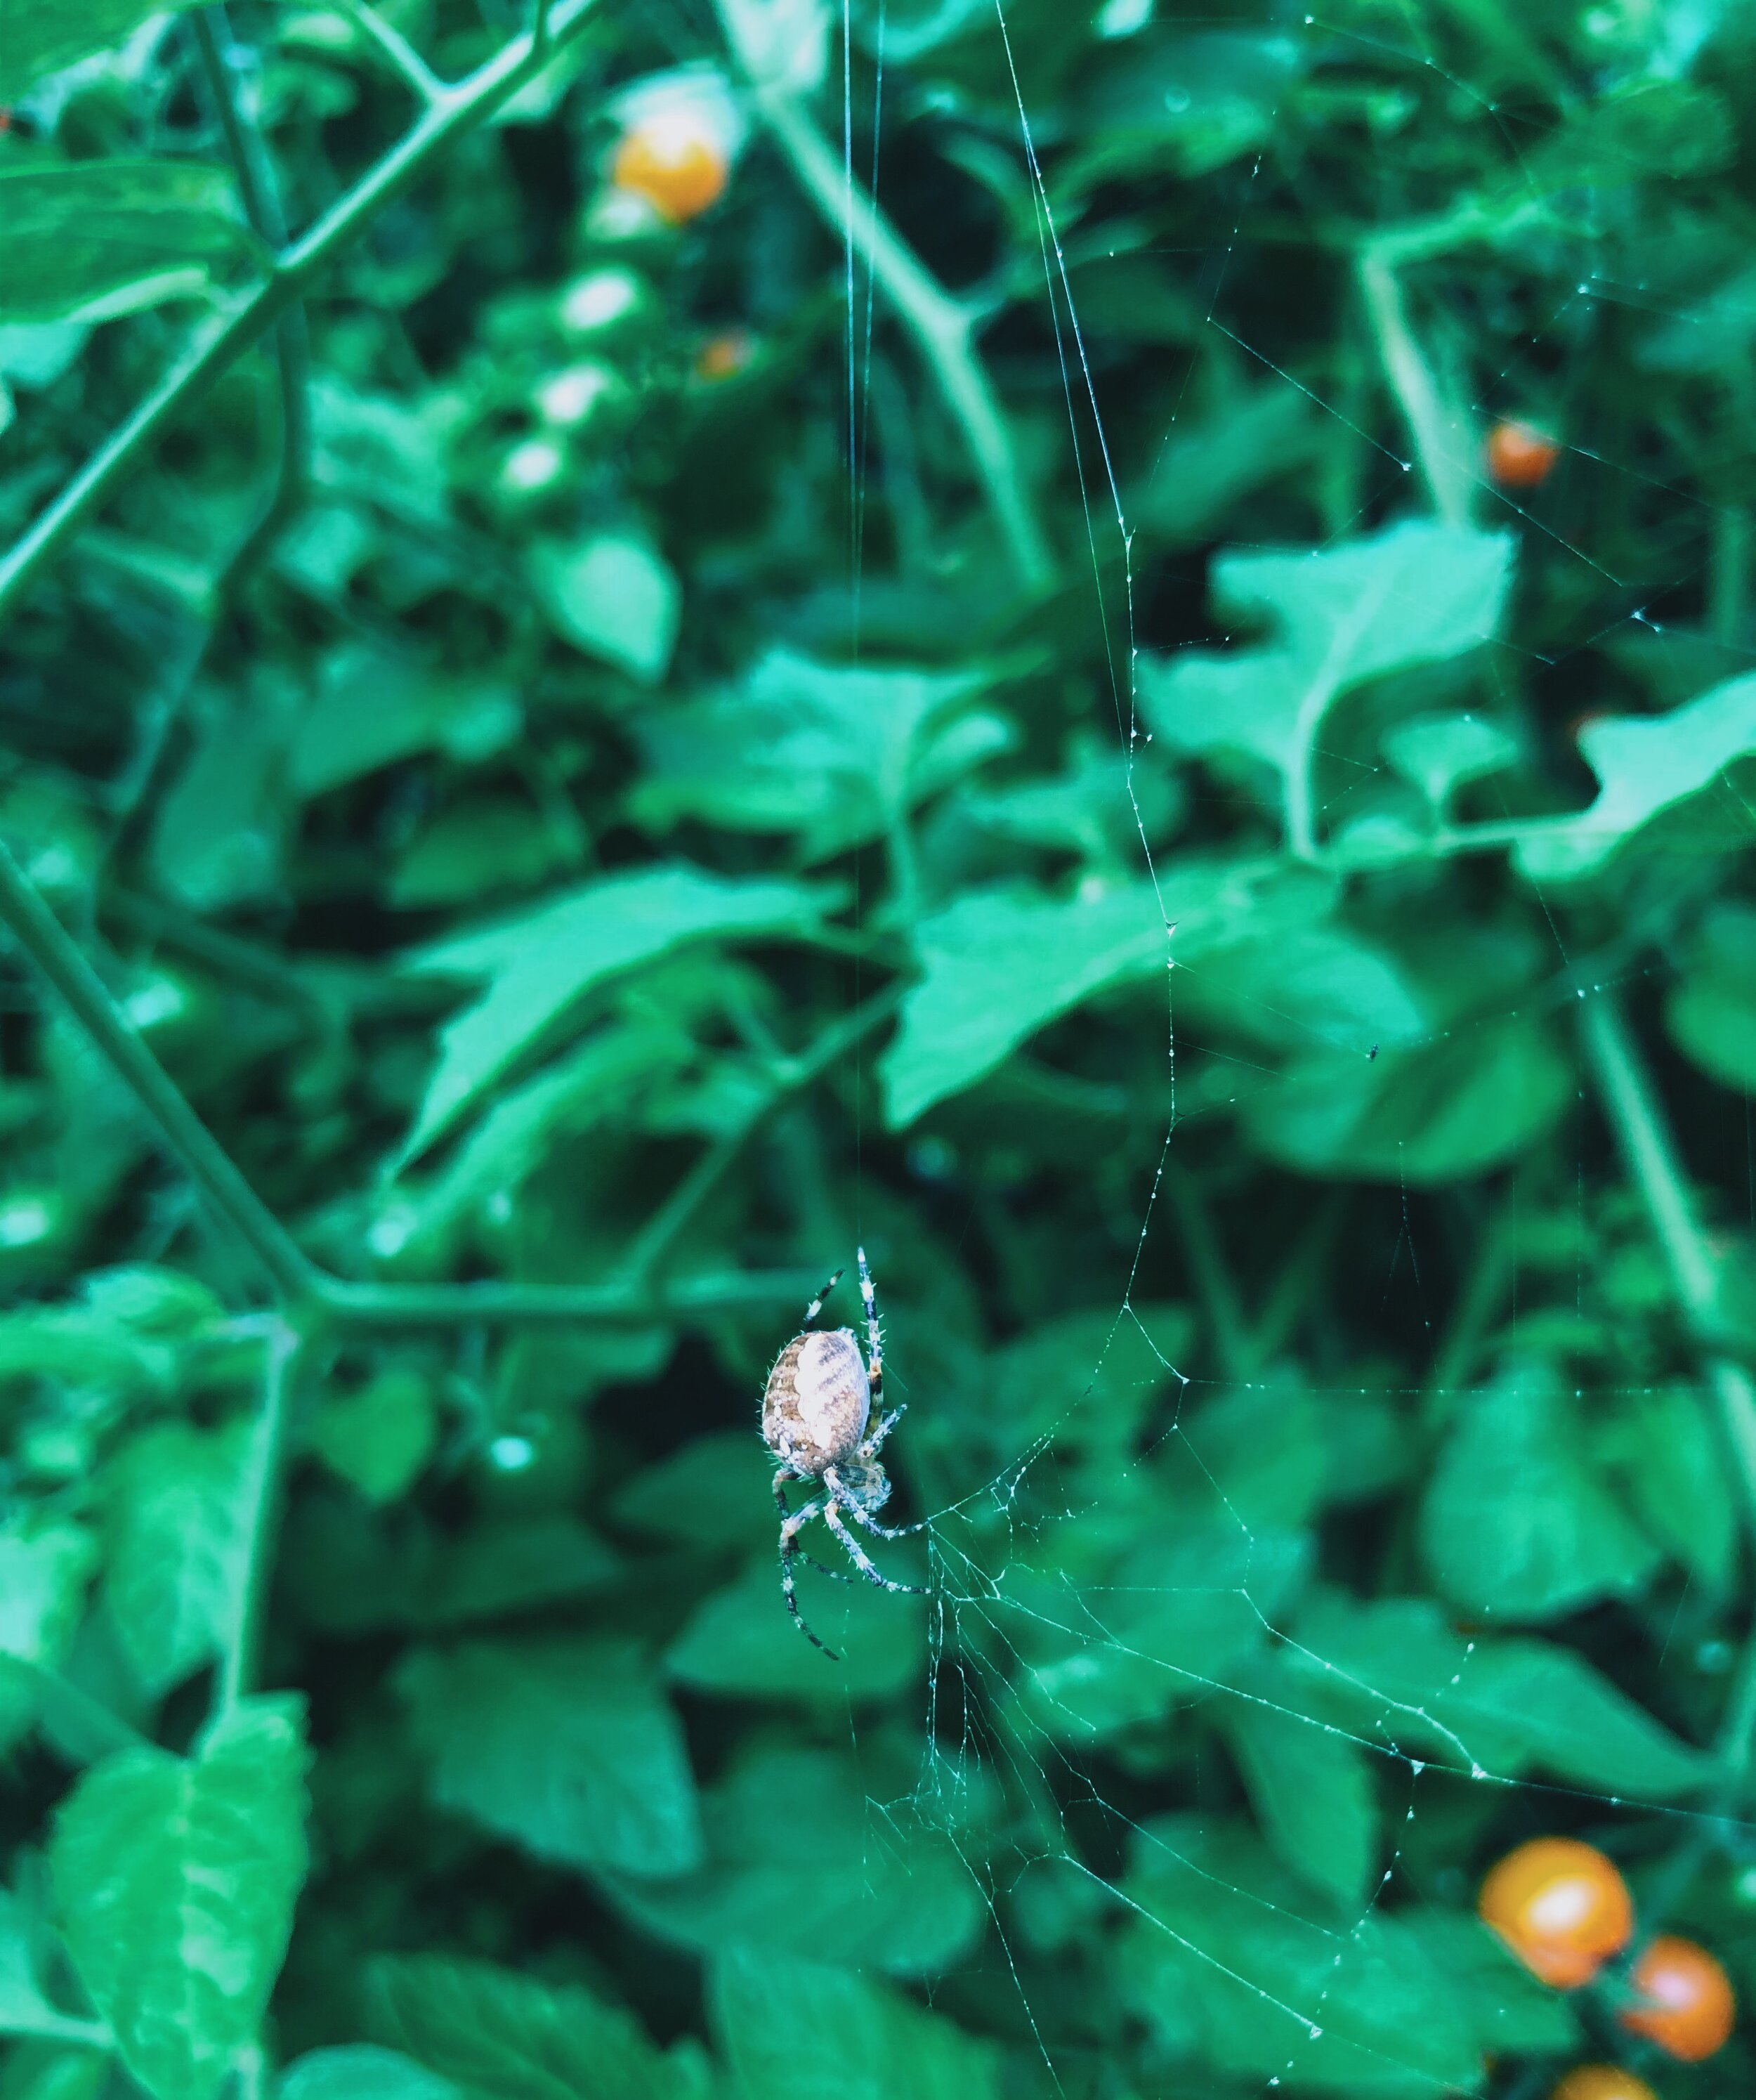 and big, fat garden spiders. (Big love to my hardworking organic pest control crew!)